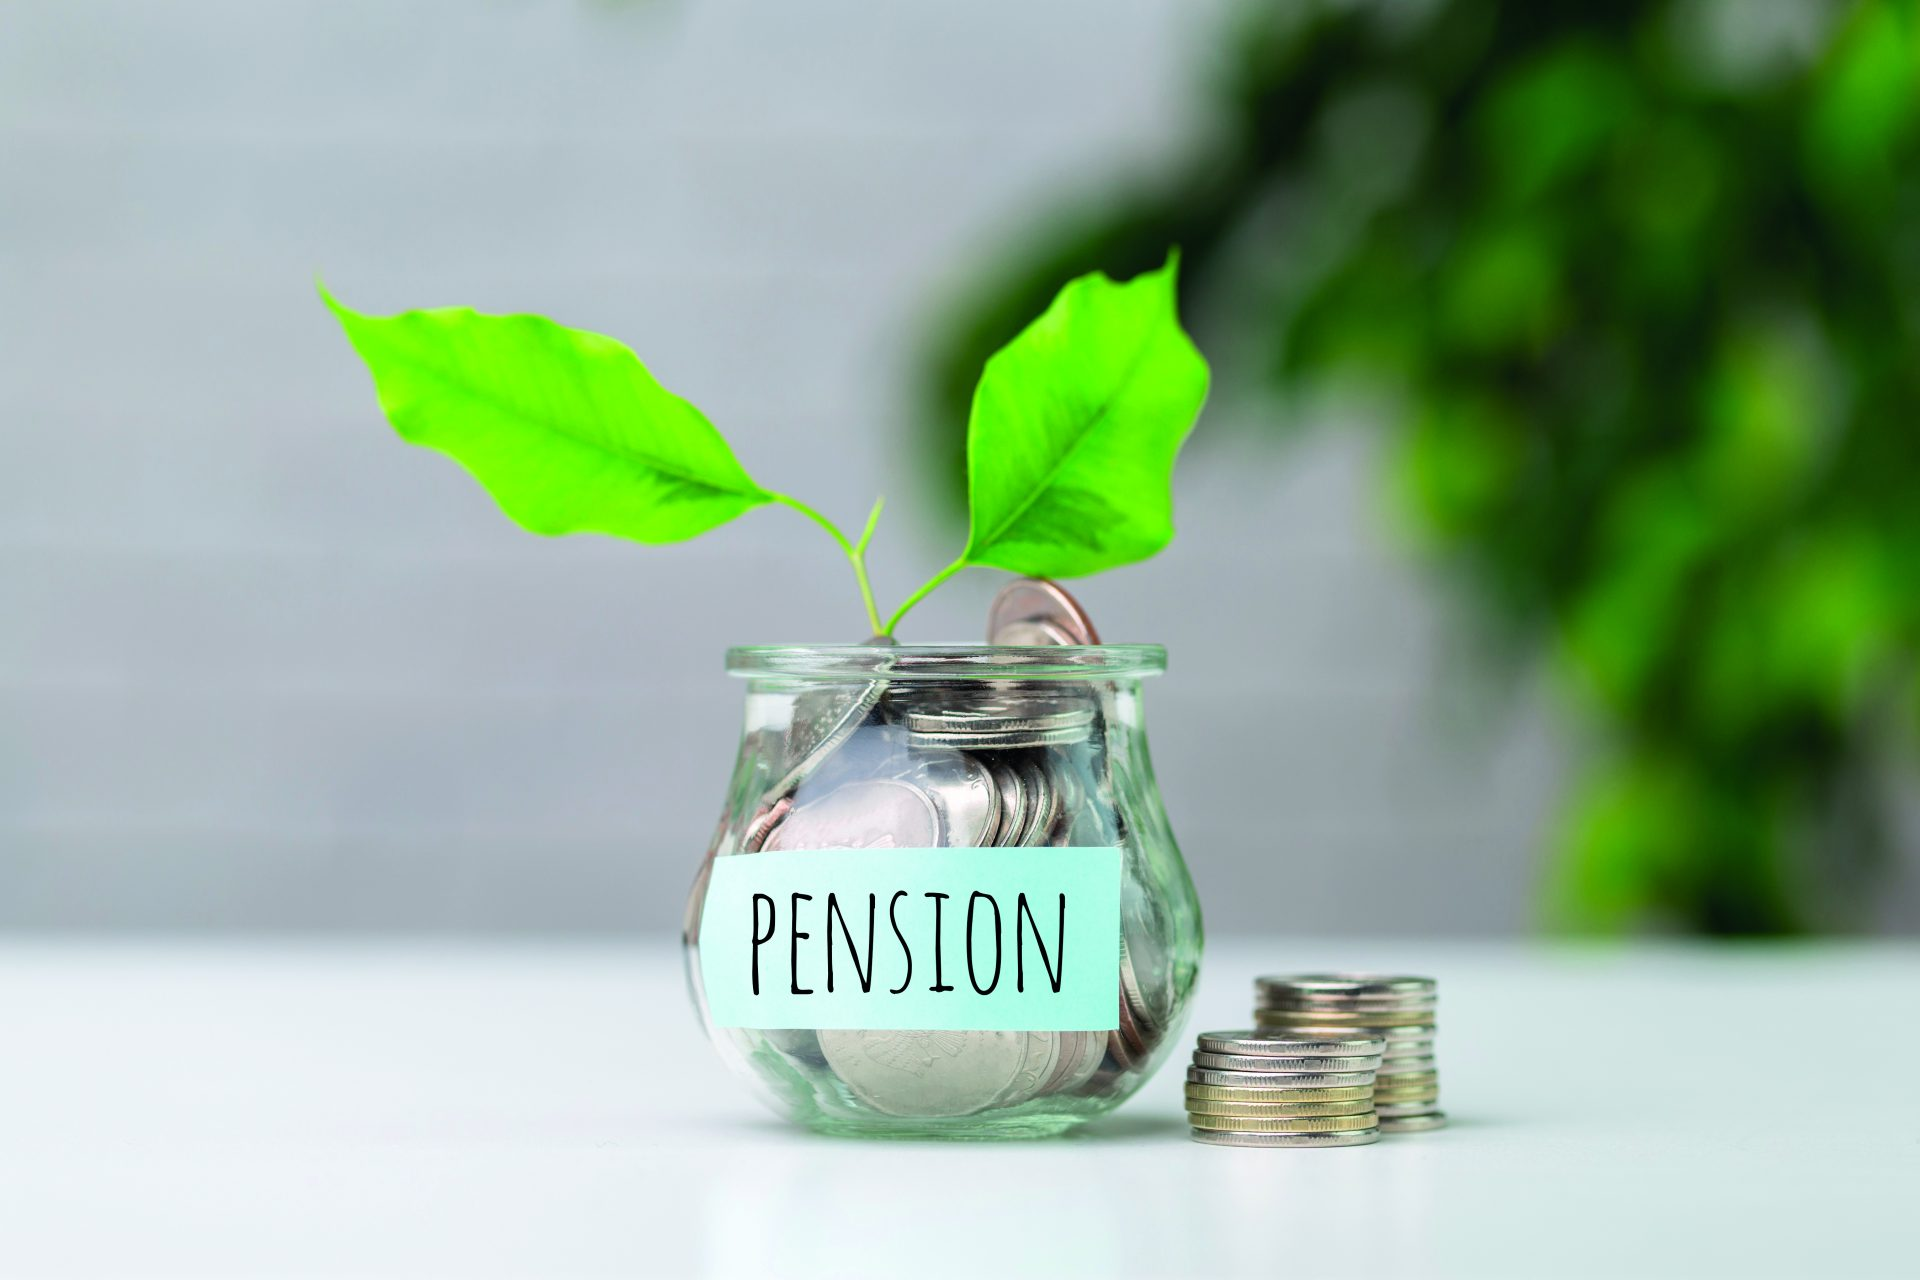 pension annual allowance, pension, tax, pension scheme, tax savings